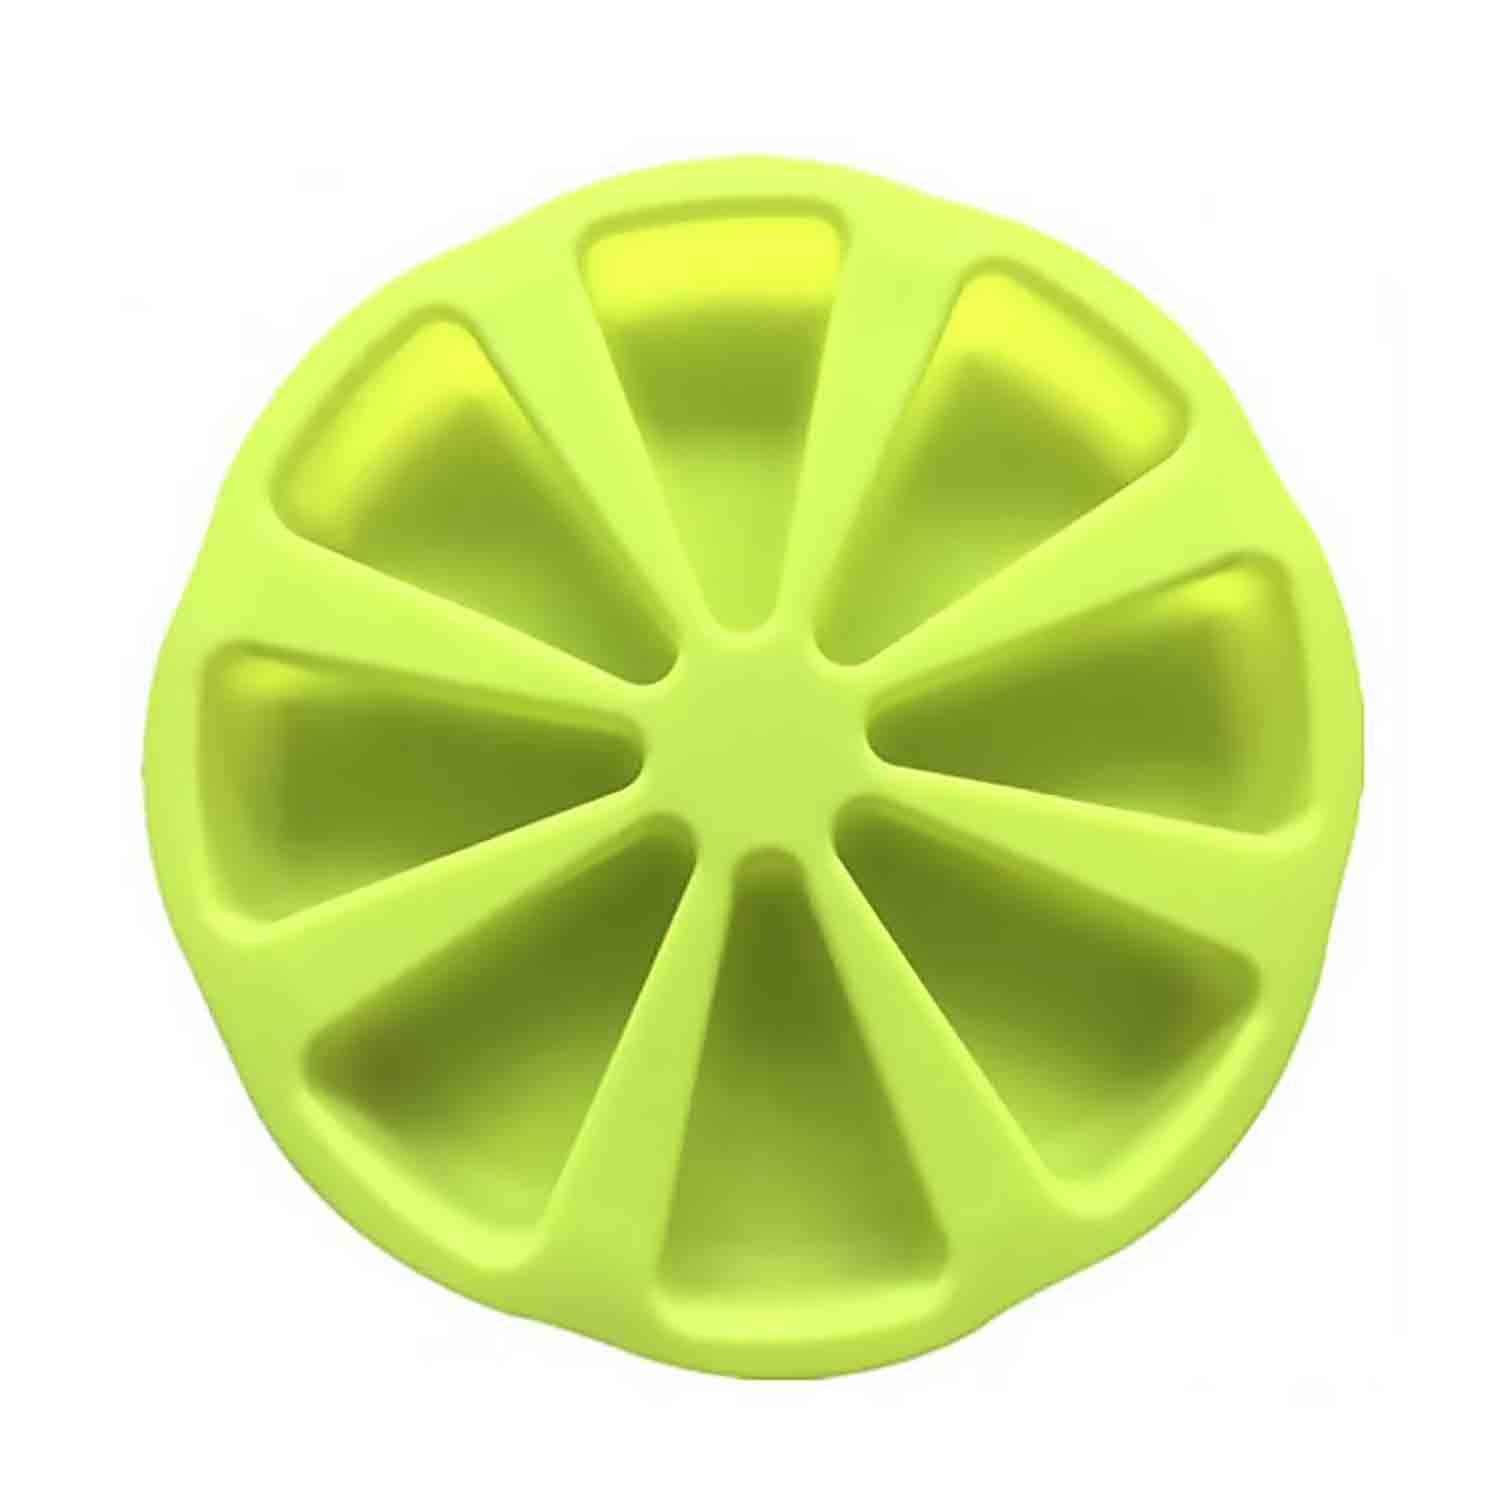 Silicone Wedge Cake Pan